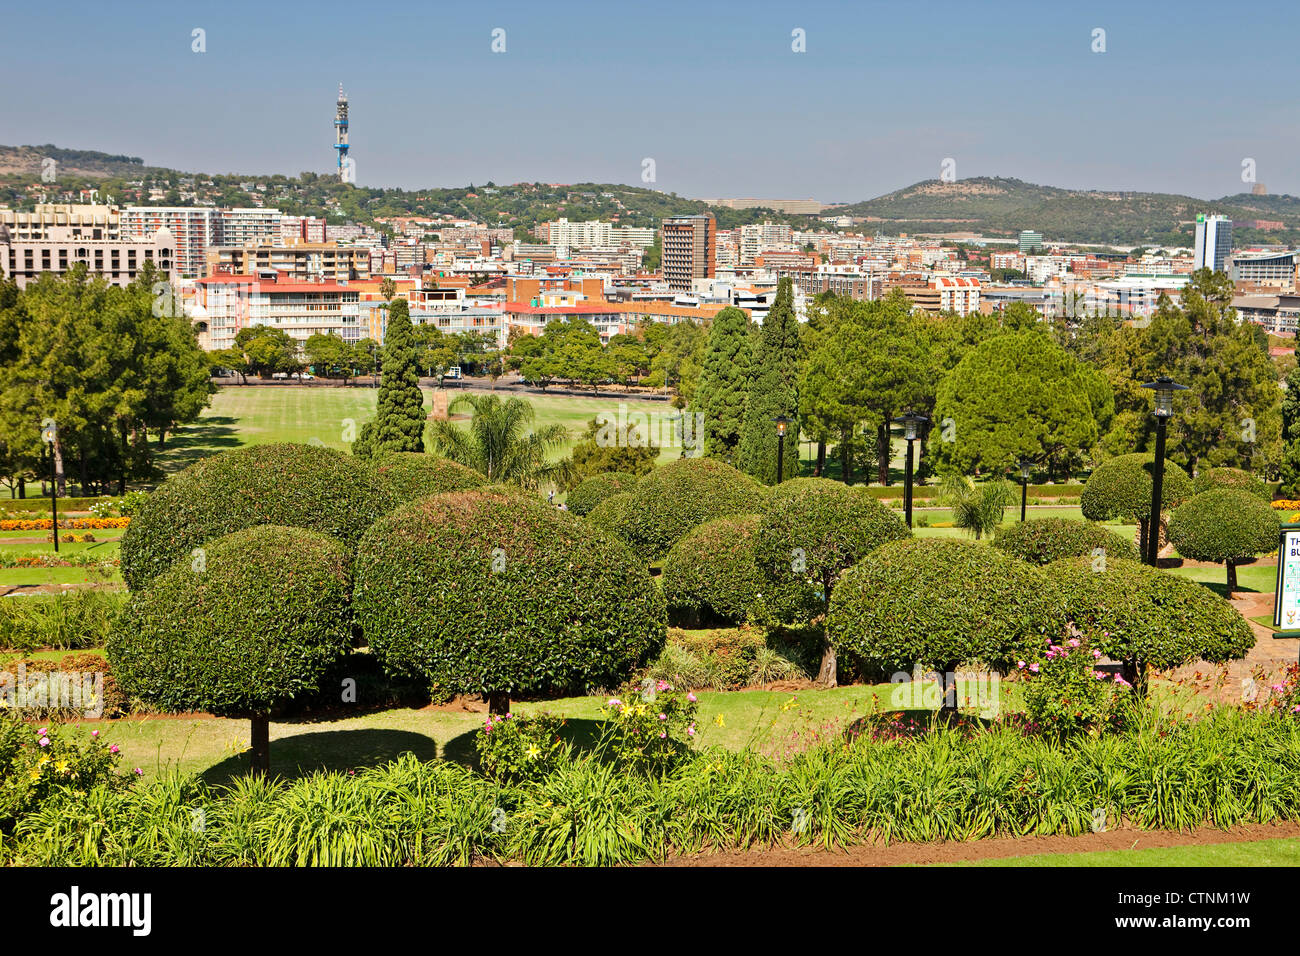 Pretoria Capital Of South Africa Stock Photo Royalty Free Image - What is the capital of south africa